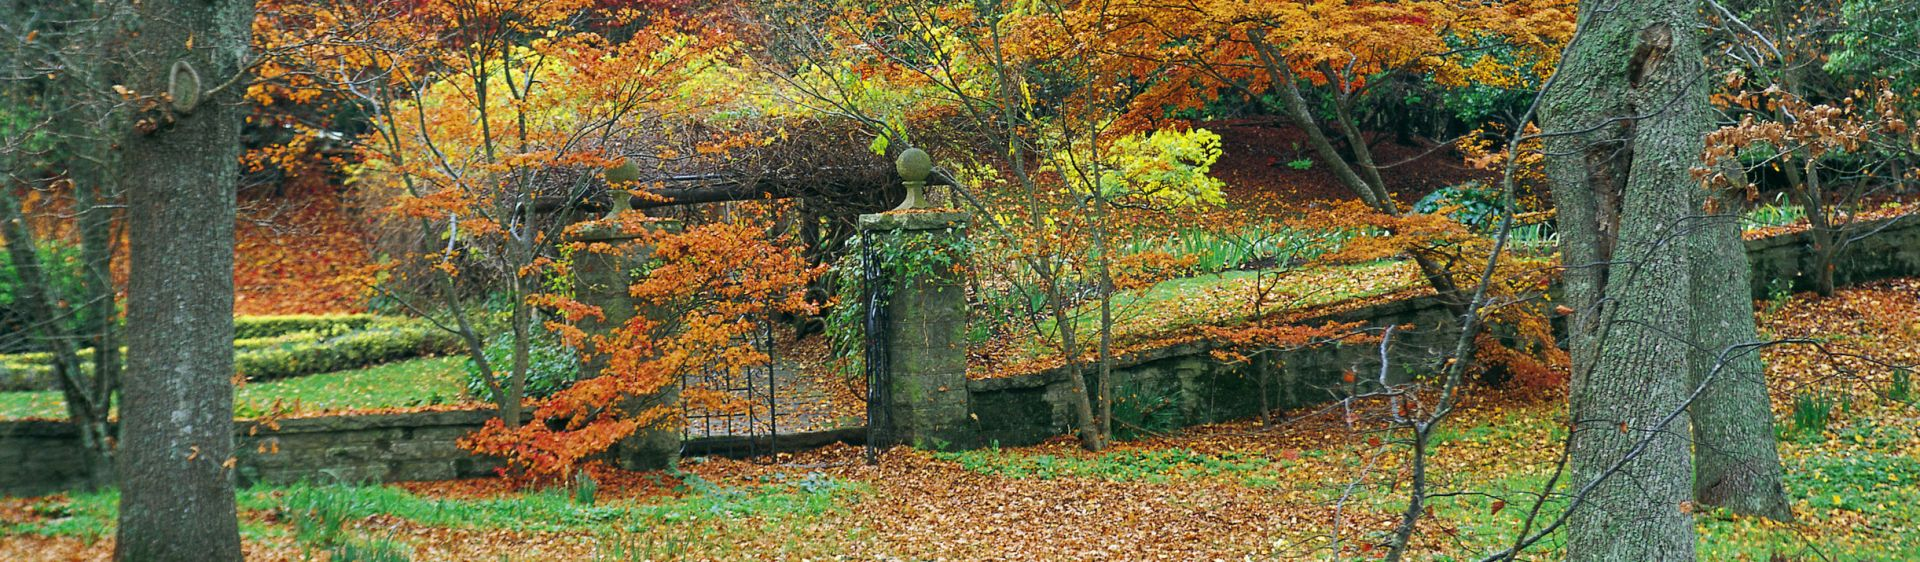 Picturesque garden in Autumn, Moss Vale, Southern Highlands